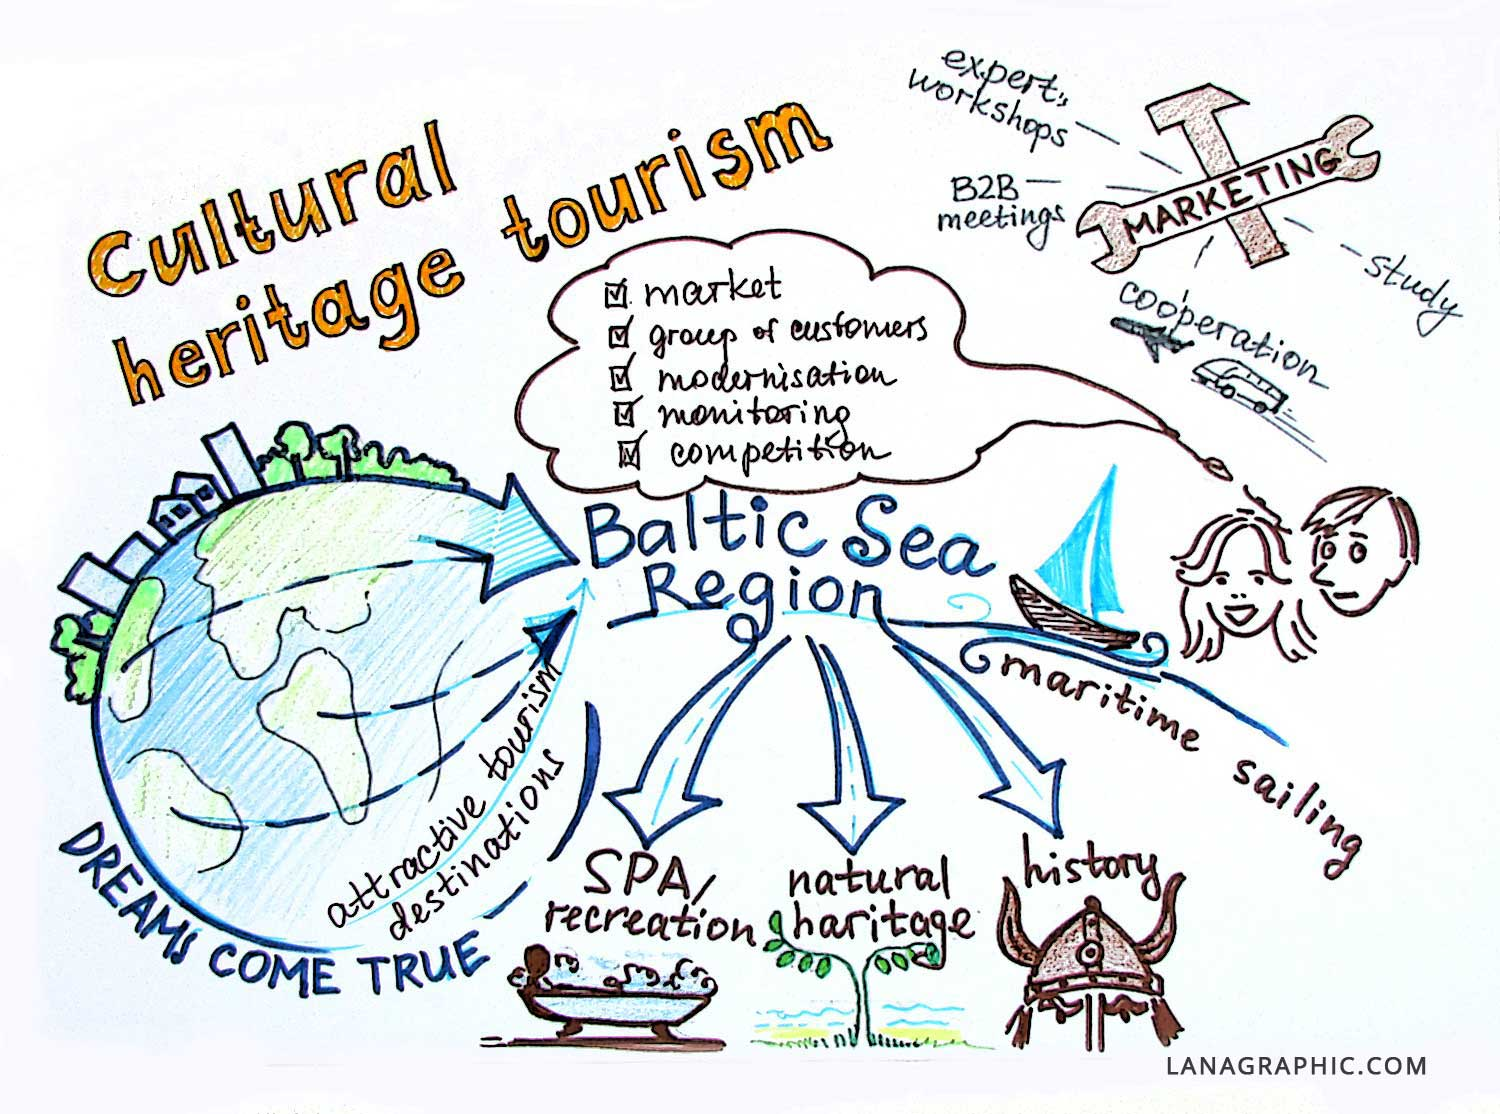 tourism-forum-cultural-heritage-by-Lanagraphic